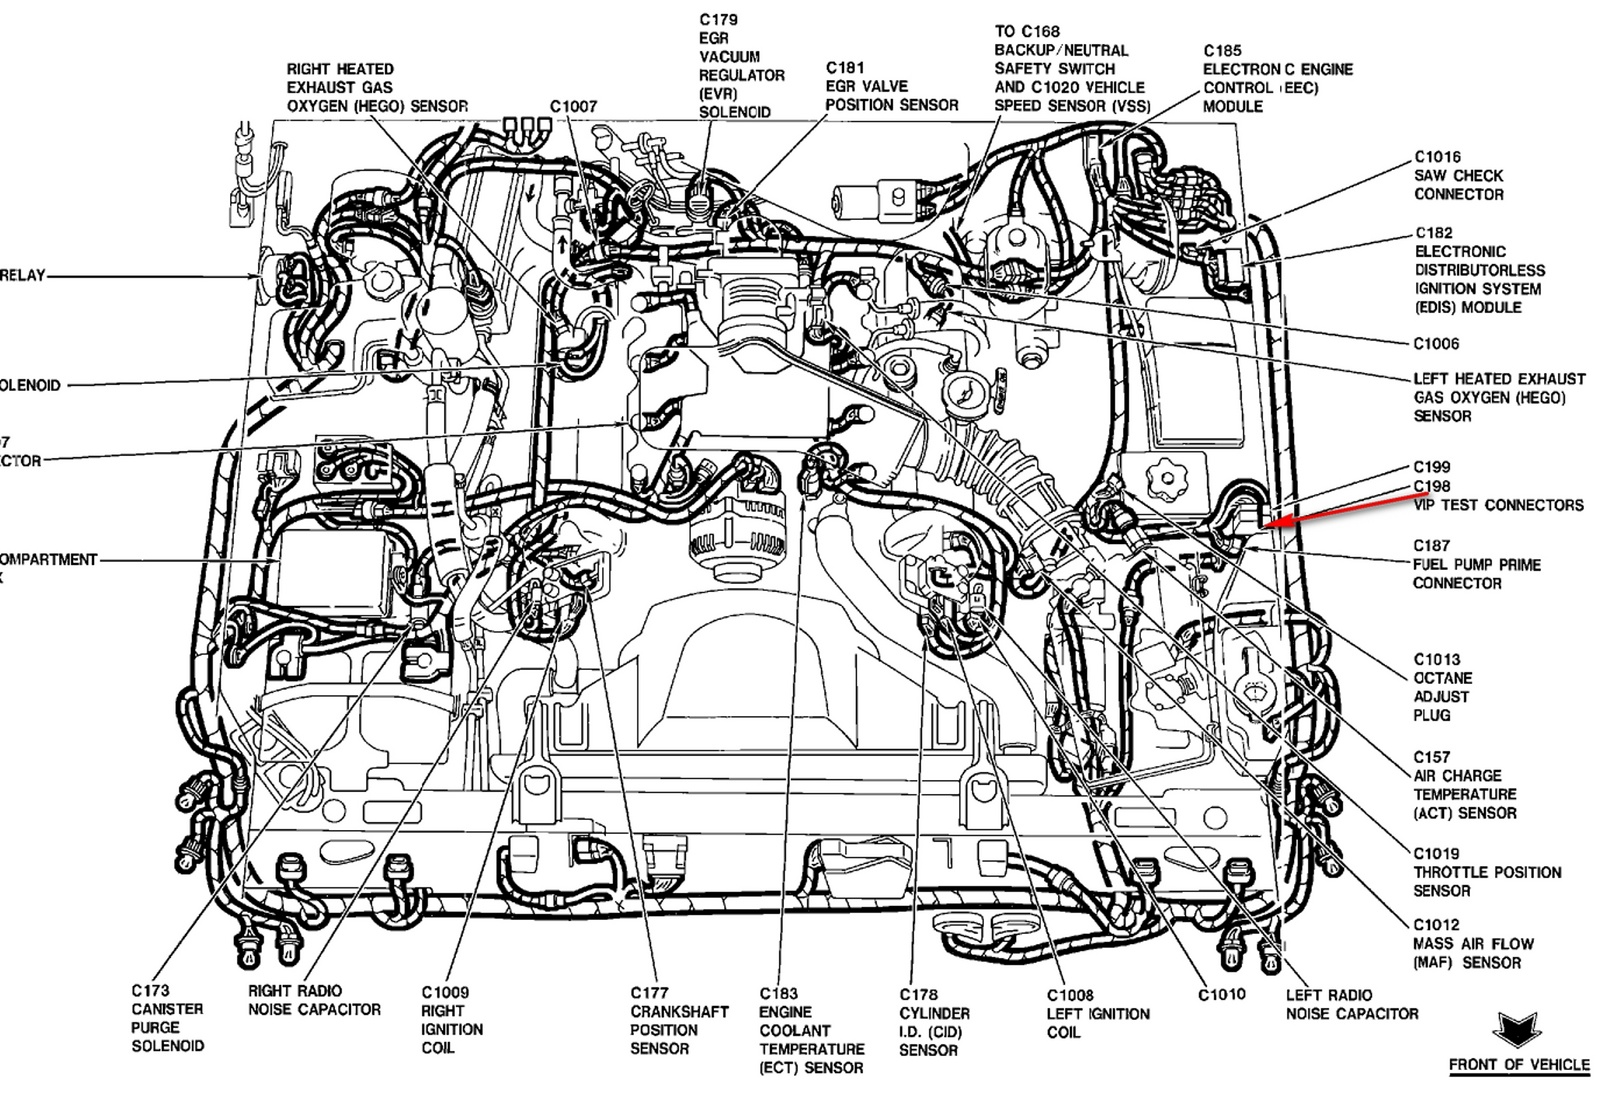 2000 Grand Marquis Engine Diagram - Today Wiring Diagram